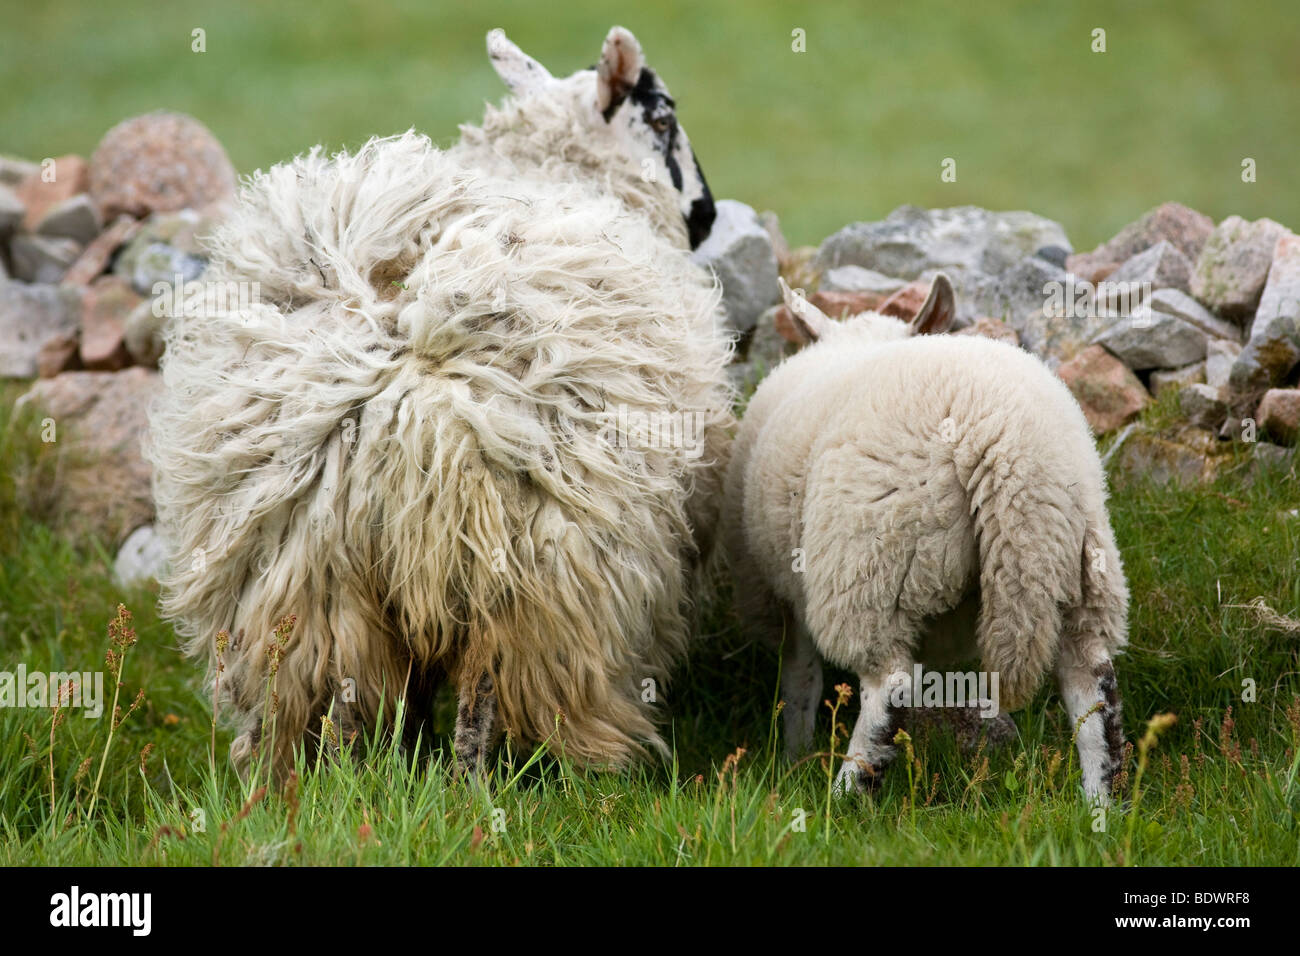 Sheep with wool tousled by the wind, Tory Iceland, Ireland, Europe - Stock Image